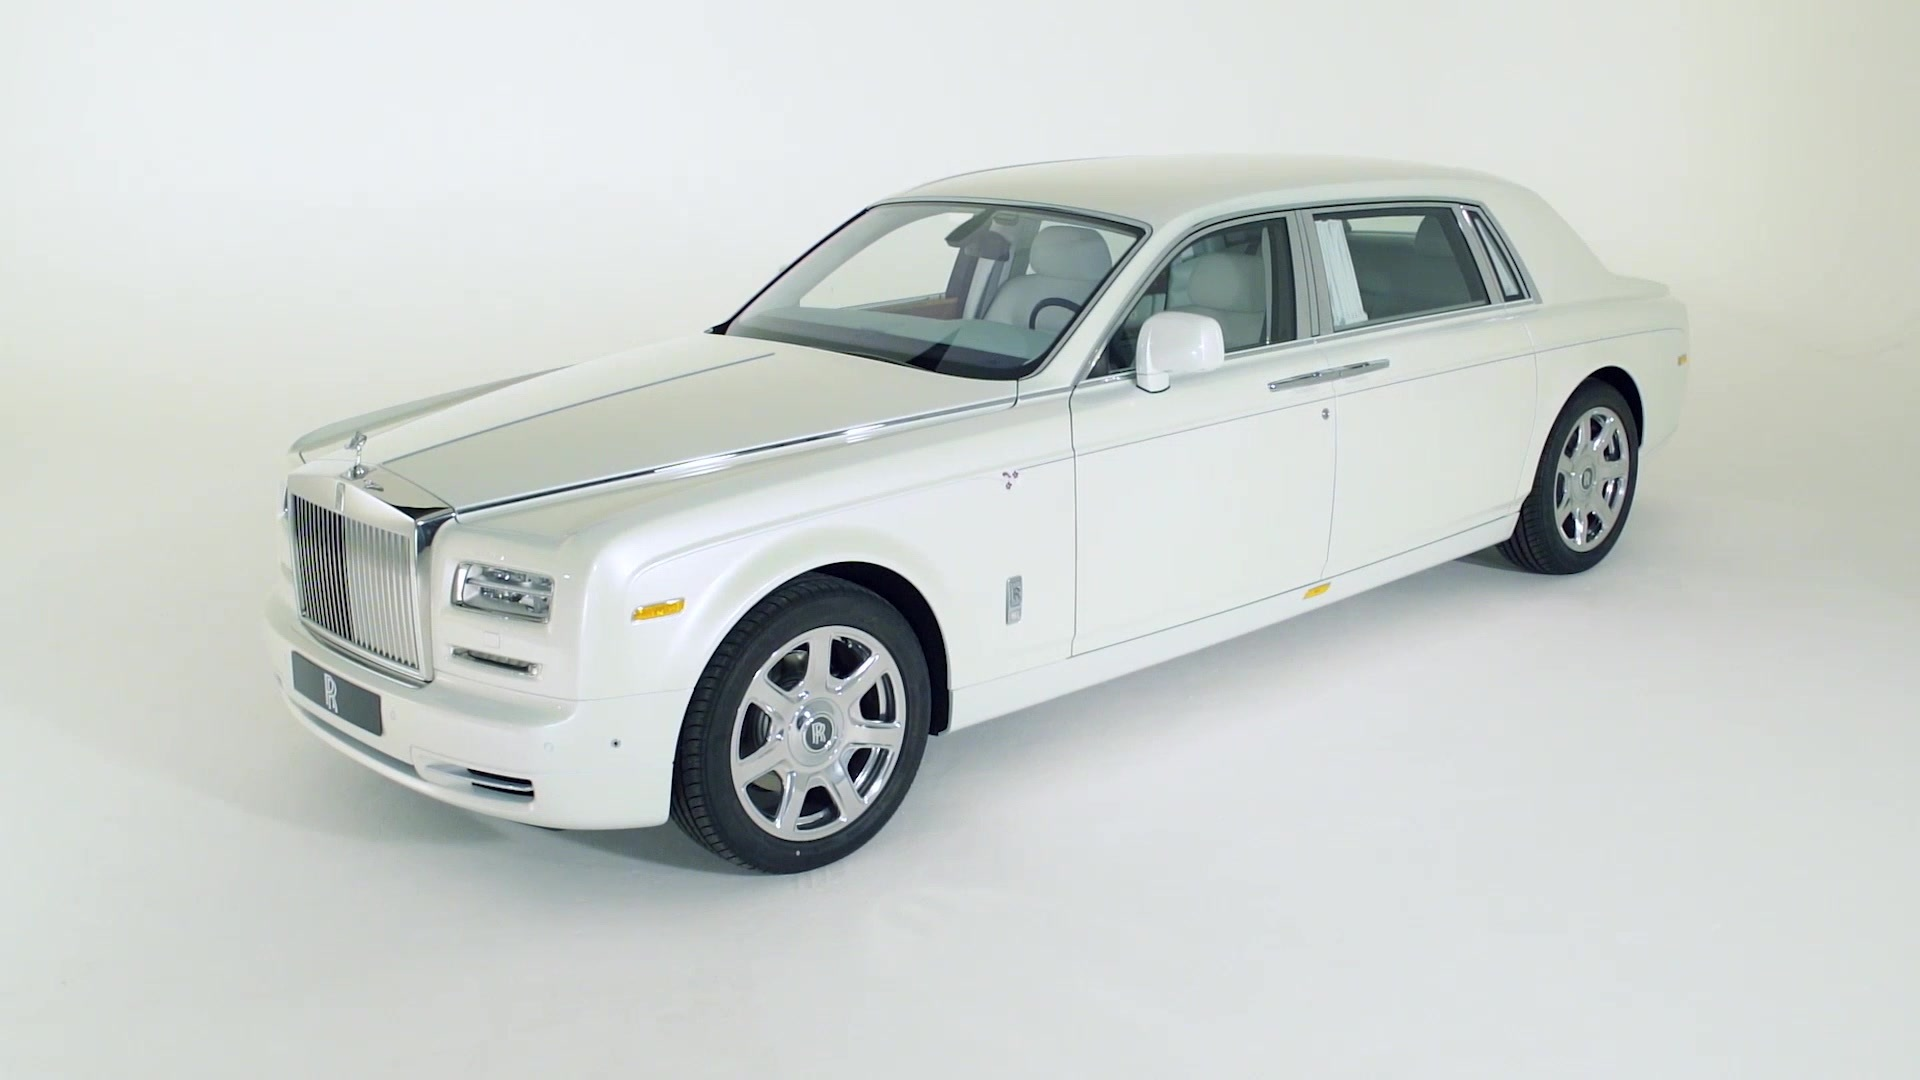 Phantom Serenity 2019 Rolls Royce Phantom Serenity Car Photos Catalog 2019